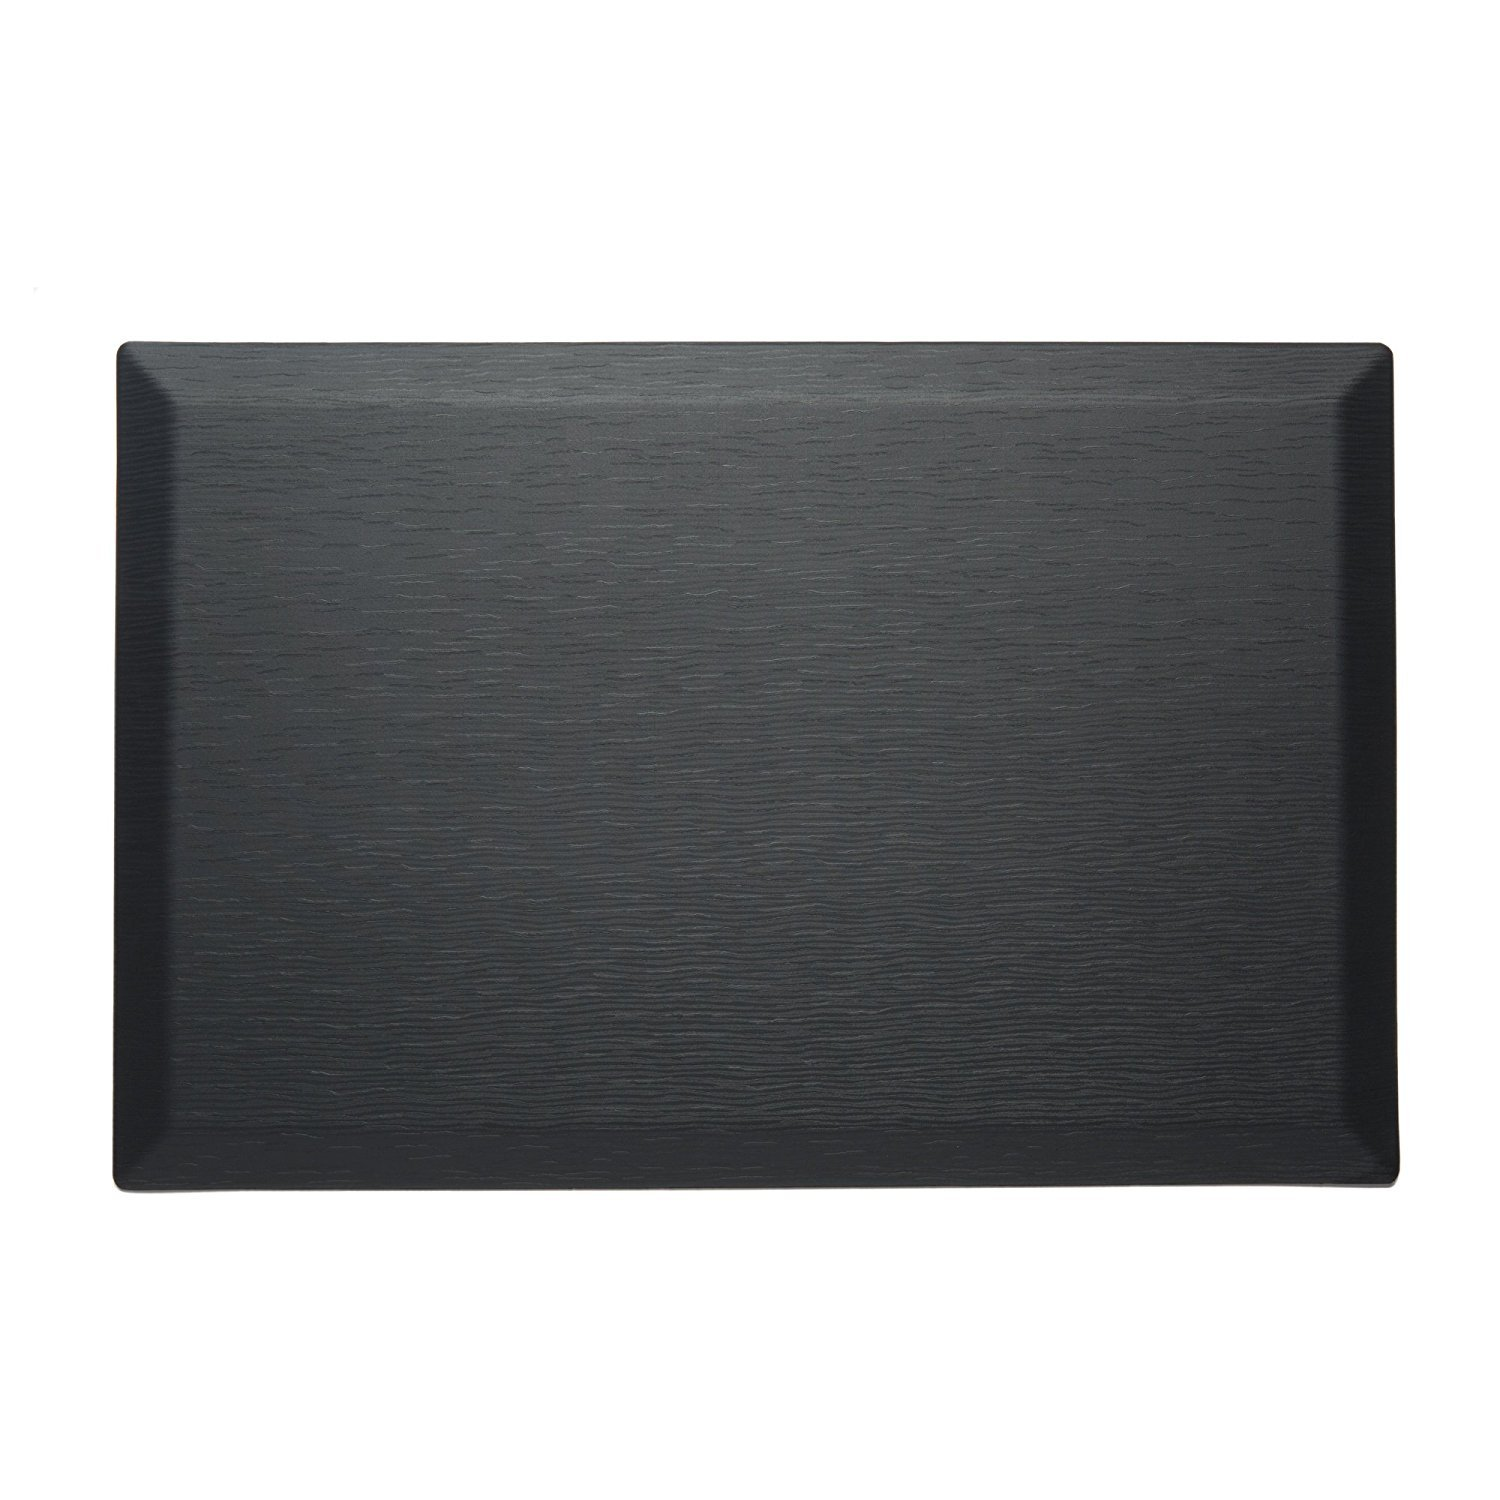 CumulusPRO Commercial Couture Strata Slate Grey Anti-Fatigue Comfort Mat, Office Mat, Stand Up Desk Mat, Kitchen Mat 24 in. x 36 in. x 3/4 in. Imprint® Comfort Mats FBA_9103